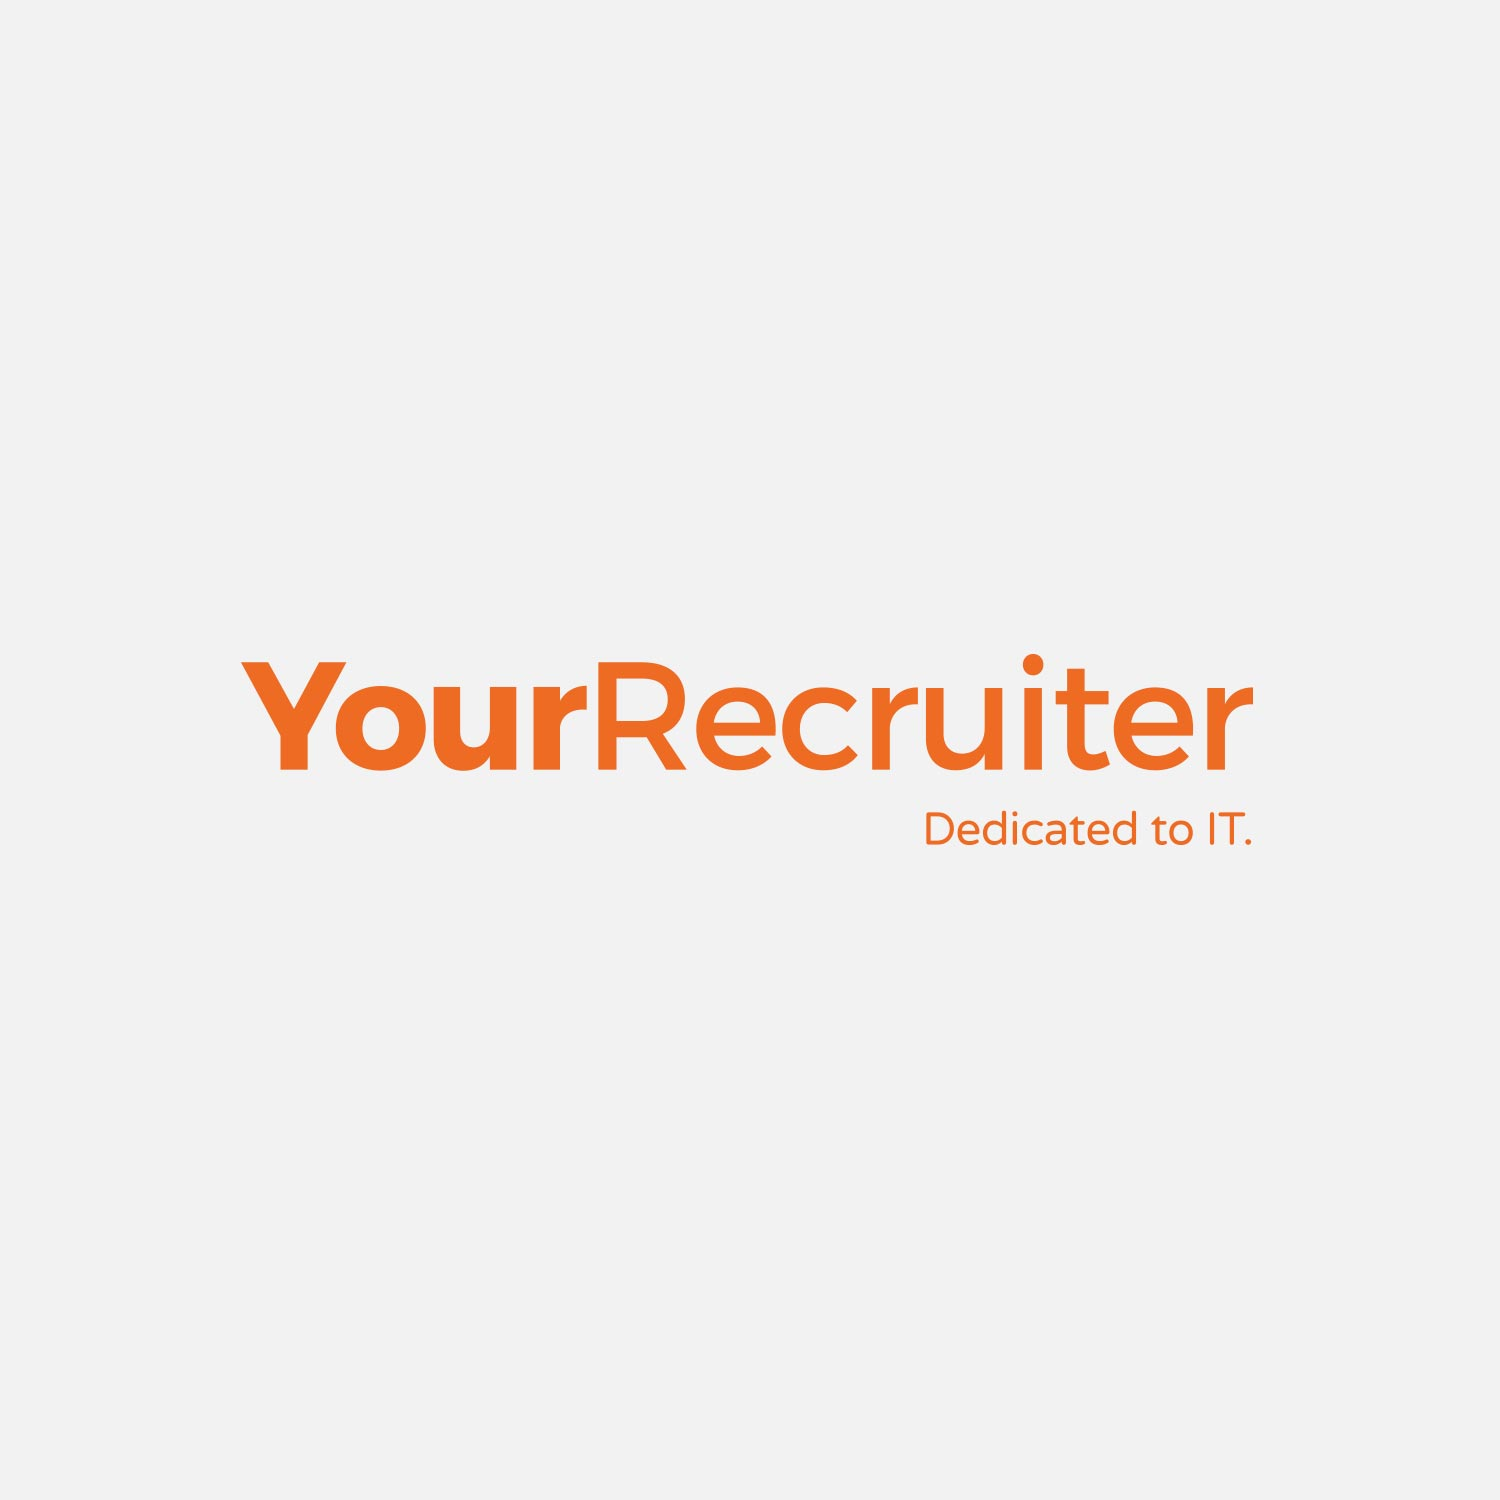 YourRecruiter logo